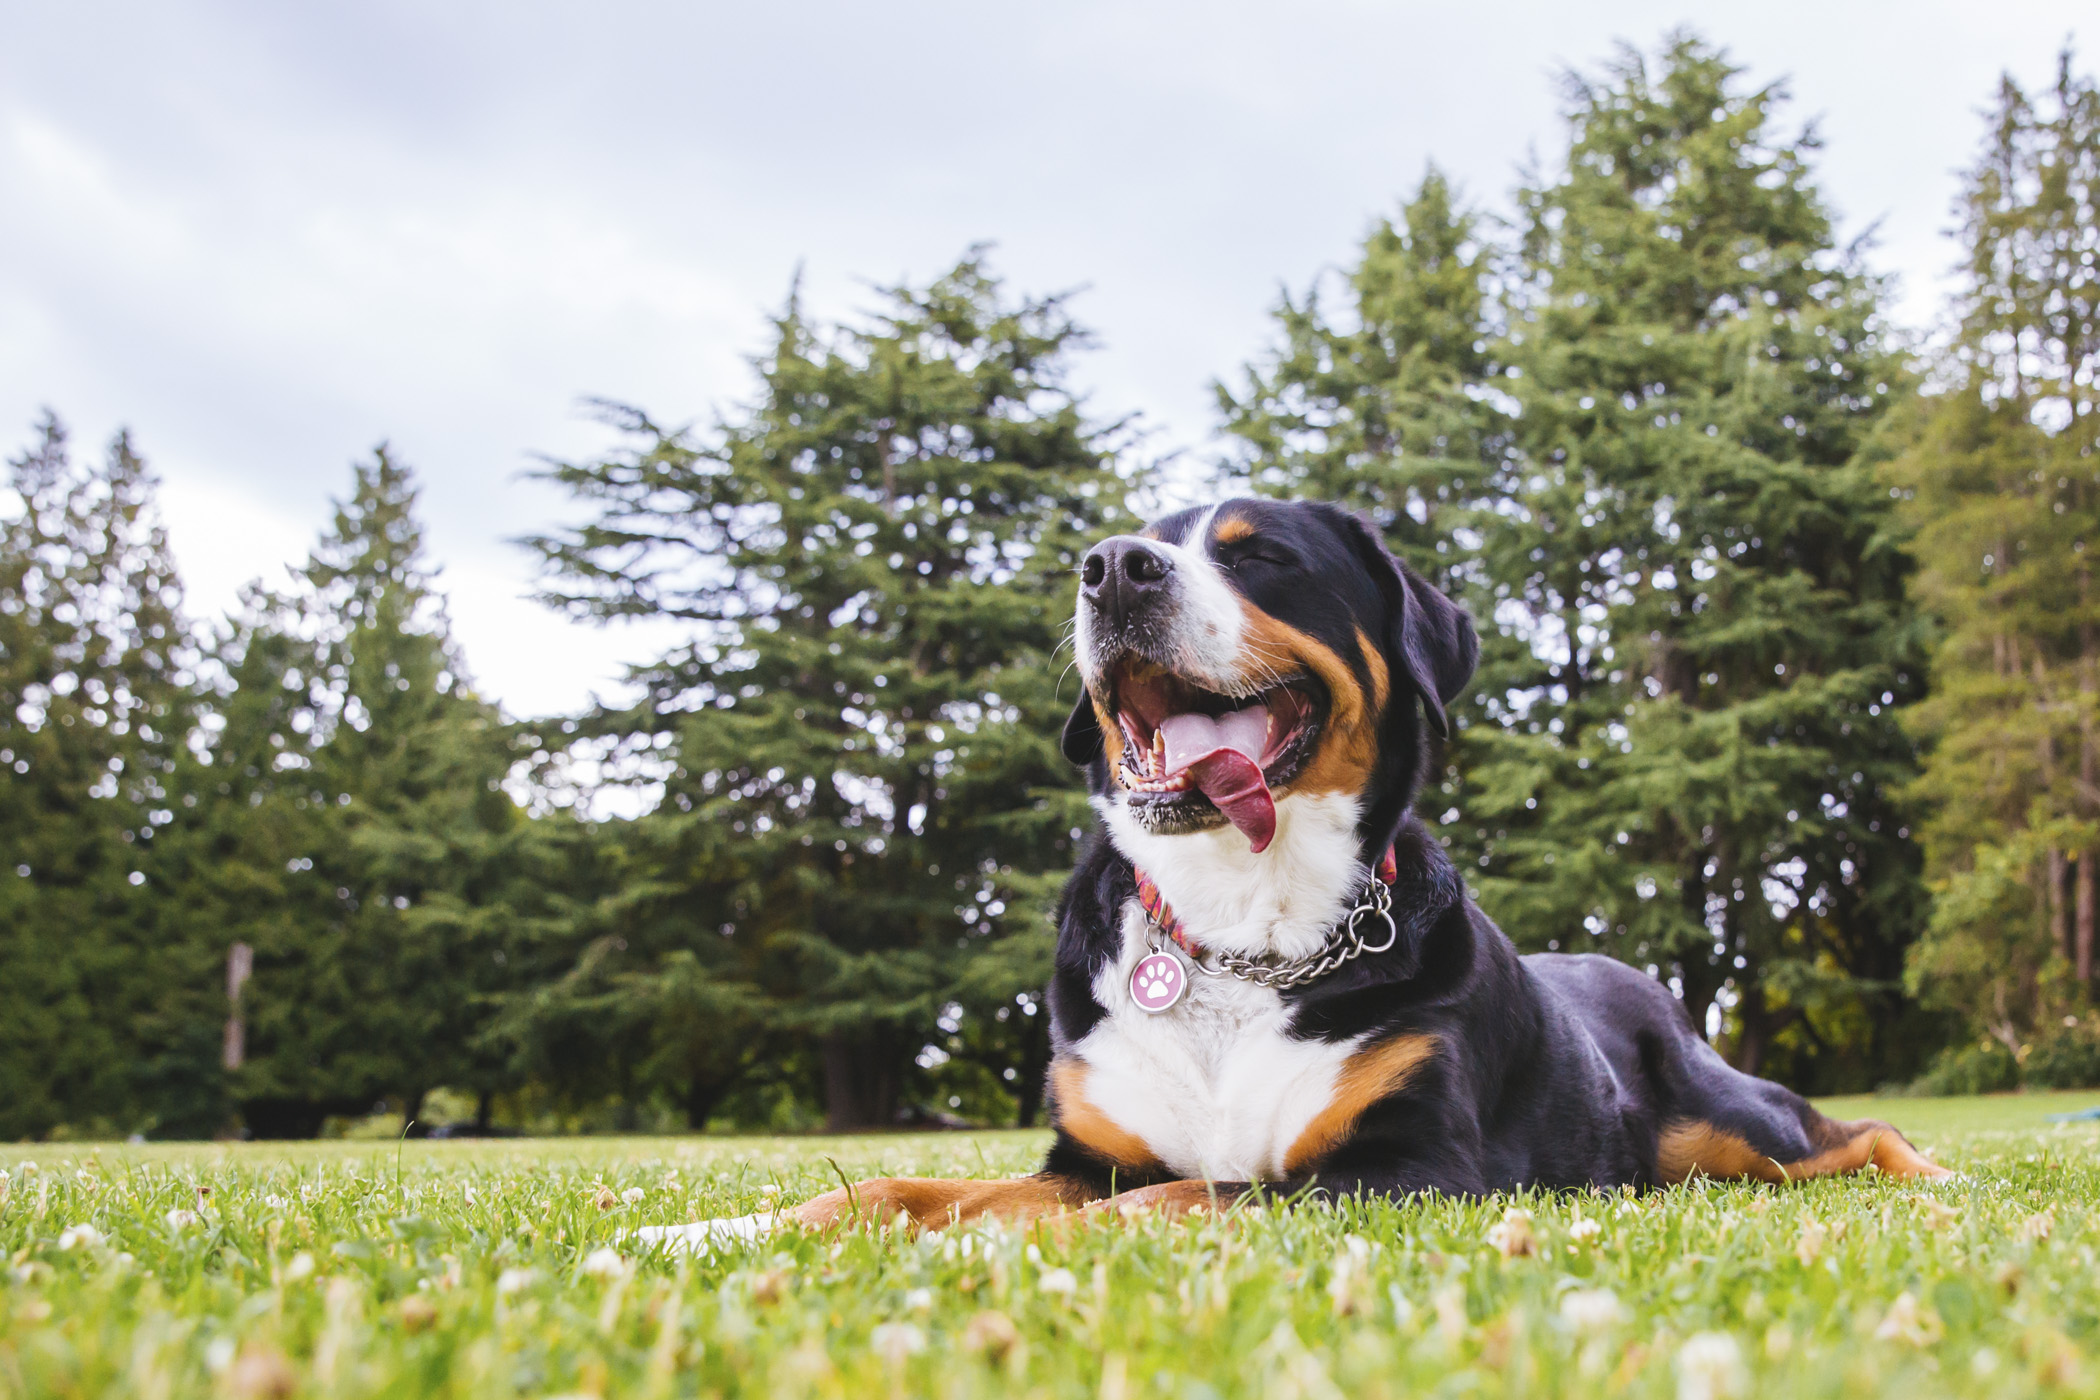 Meet Cleo, the four-year-old Great Swiss Mountain Dog! Cleo loves Tillamook cheddar, daily walks, other dogs, humans, the park, playing with her human siblings, naps and running in the snow! She dislikes the vacuum, rain, and lettuce.{ }The Seattle RUFFined Spotlight is a weekly profile of local pets living and loving life in the PNW. If you or someone you know has a pet you'd like featured, email us at hello@seattlerefined.com or tag #SeattleRUFFined and your furbaby could be the next spotlighted! (Image: Sunita Martini / Seattle Refined).